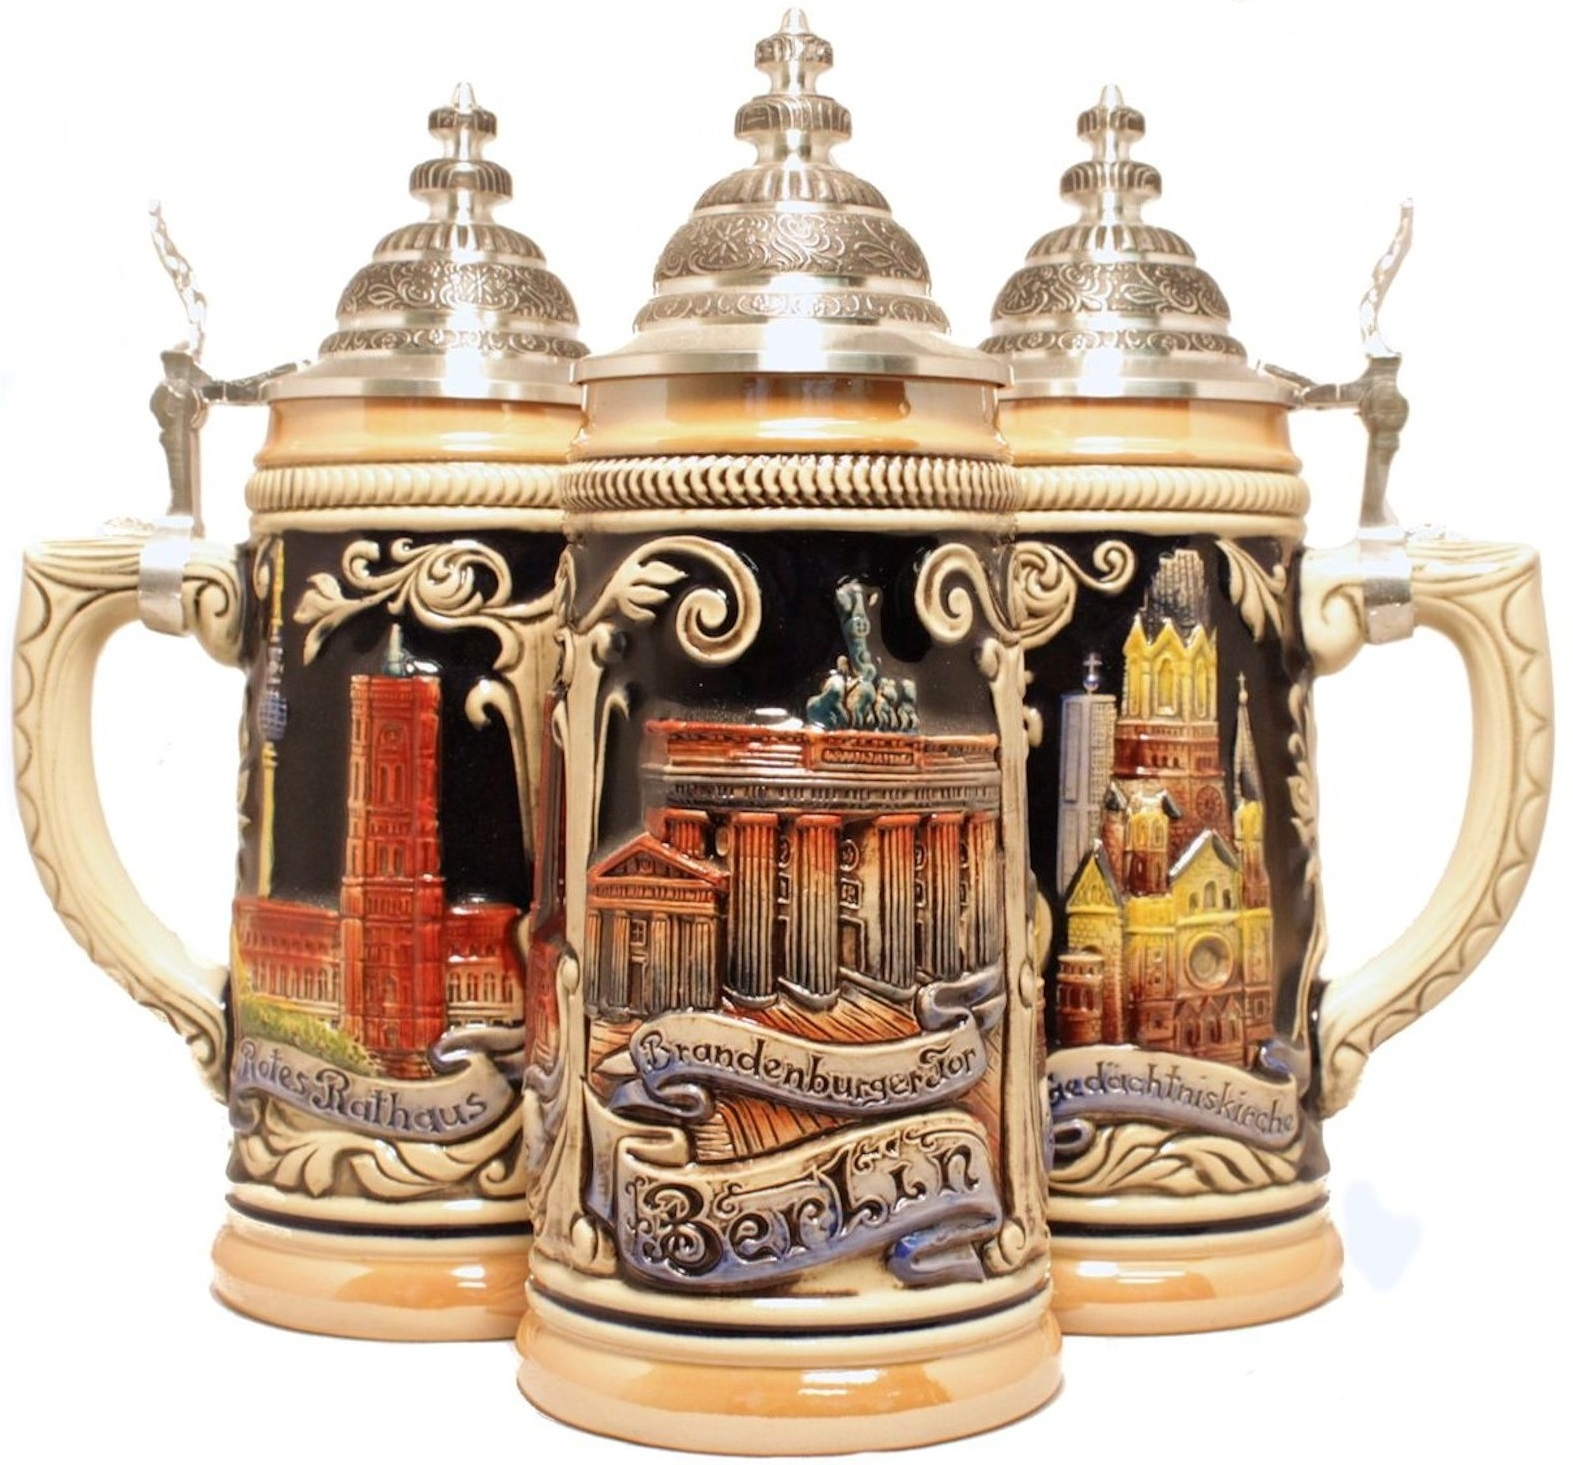 German Beer Stein With Berlin Germany Relief 1 2l Authentic Beer Steins From Germany